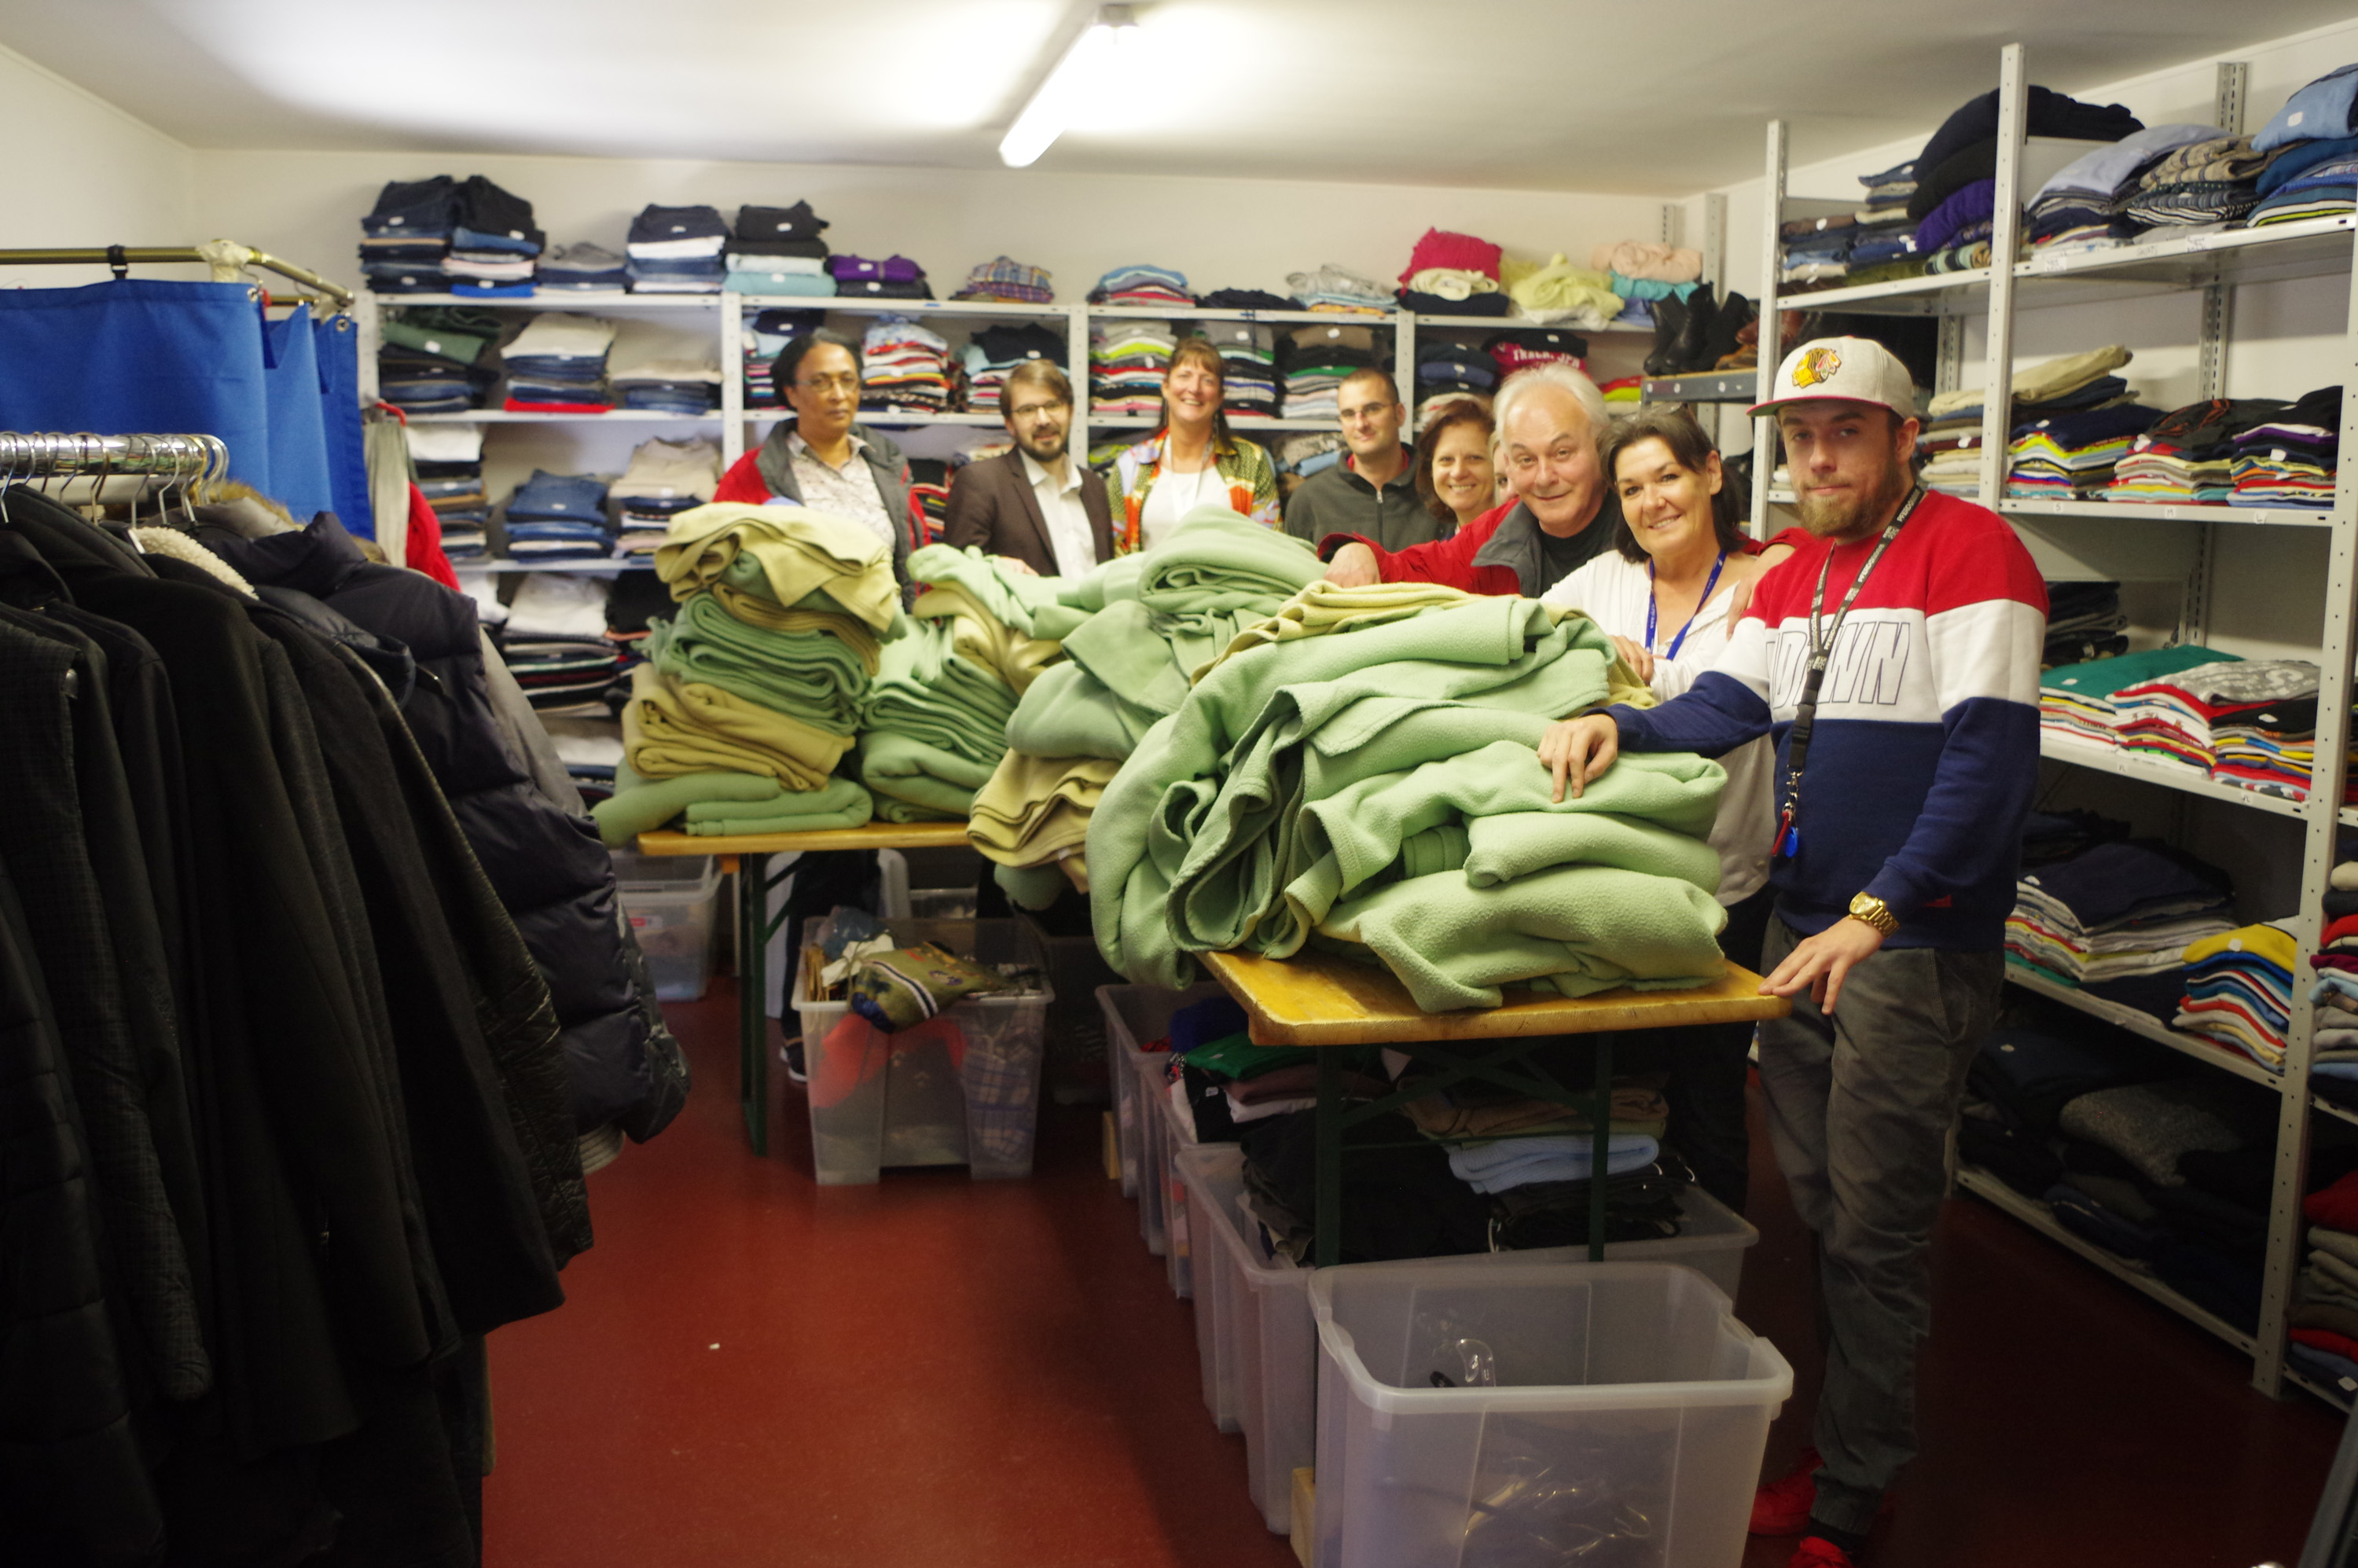 52 blankets offered by the Ibis Hotel to people in need